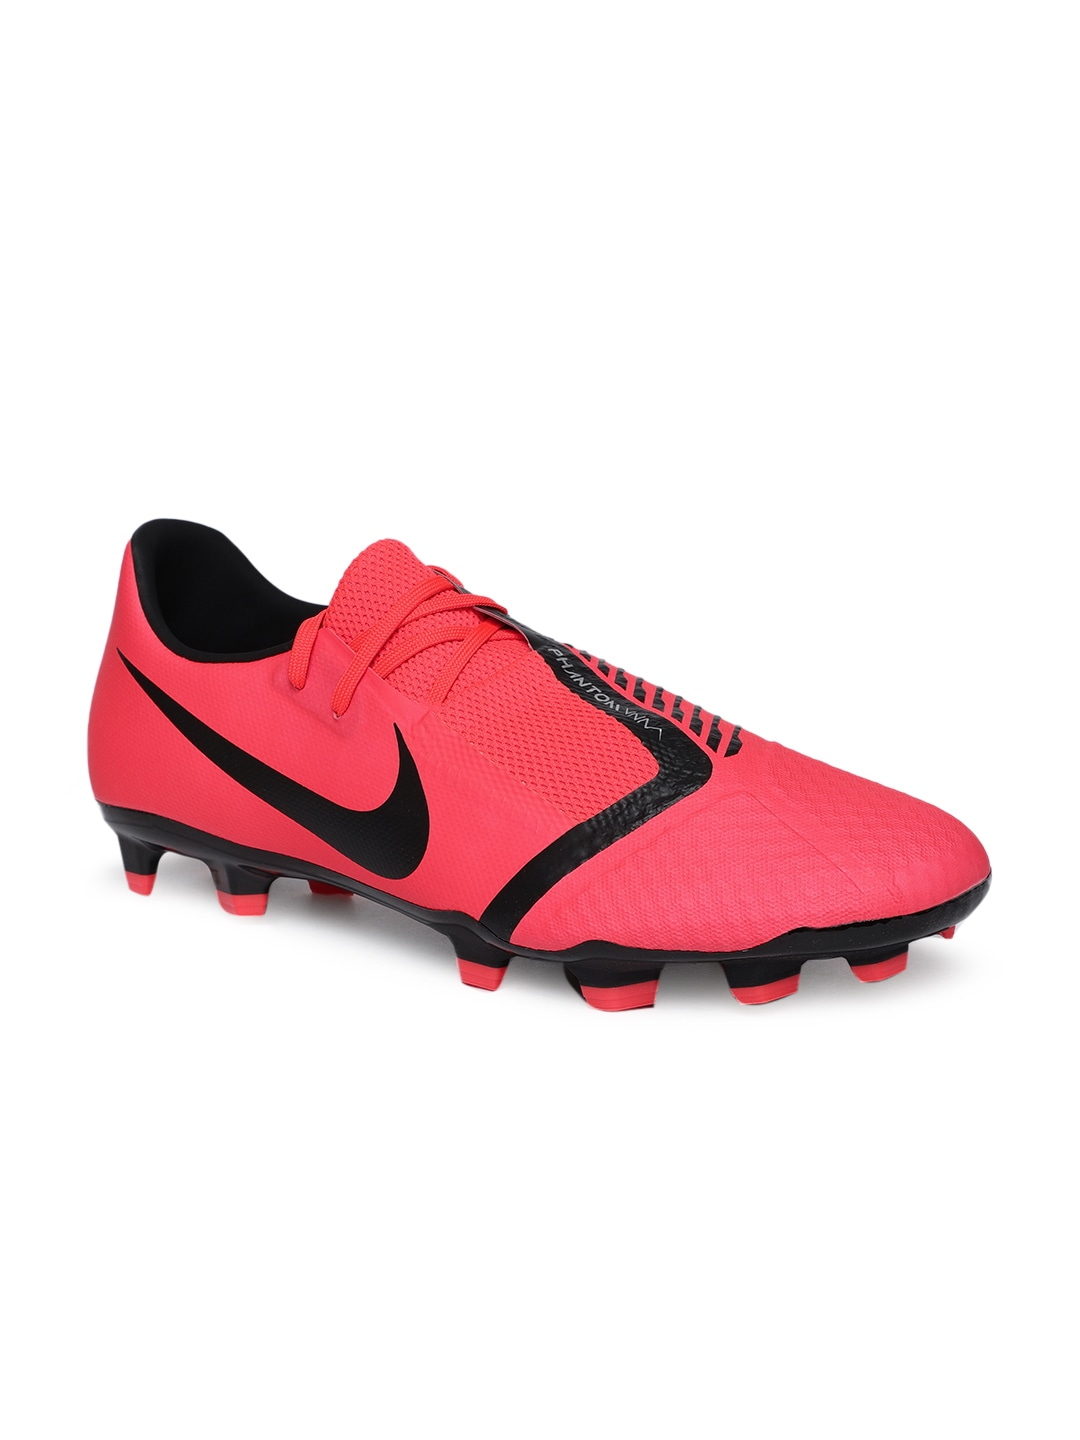 4b60c879fe1b11 Nike Football Shoes - Buy Nike Football Shoes Online At Myntra